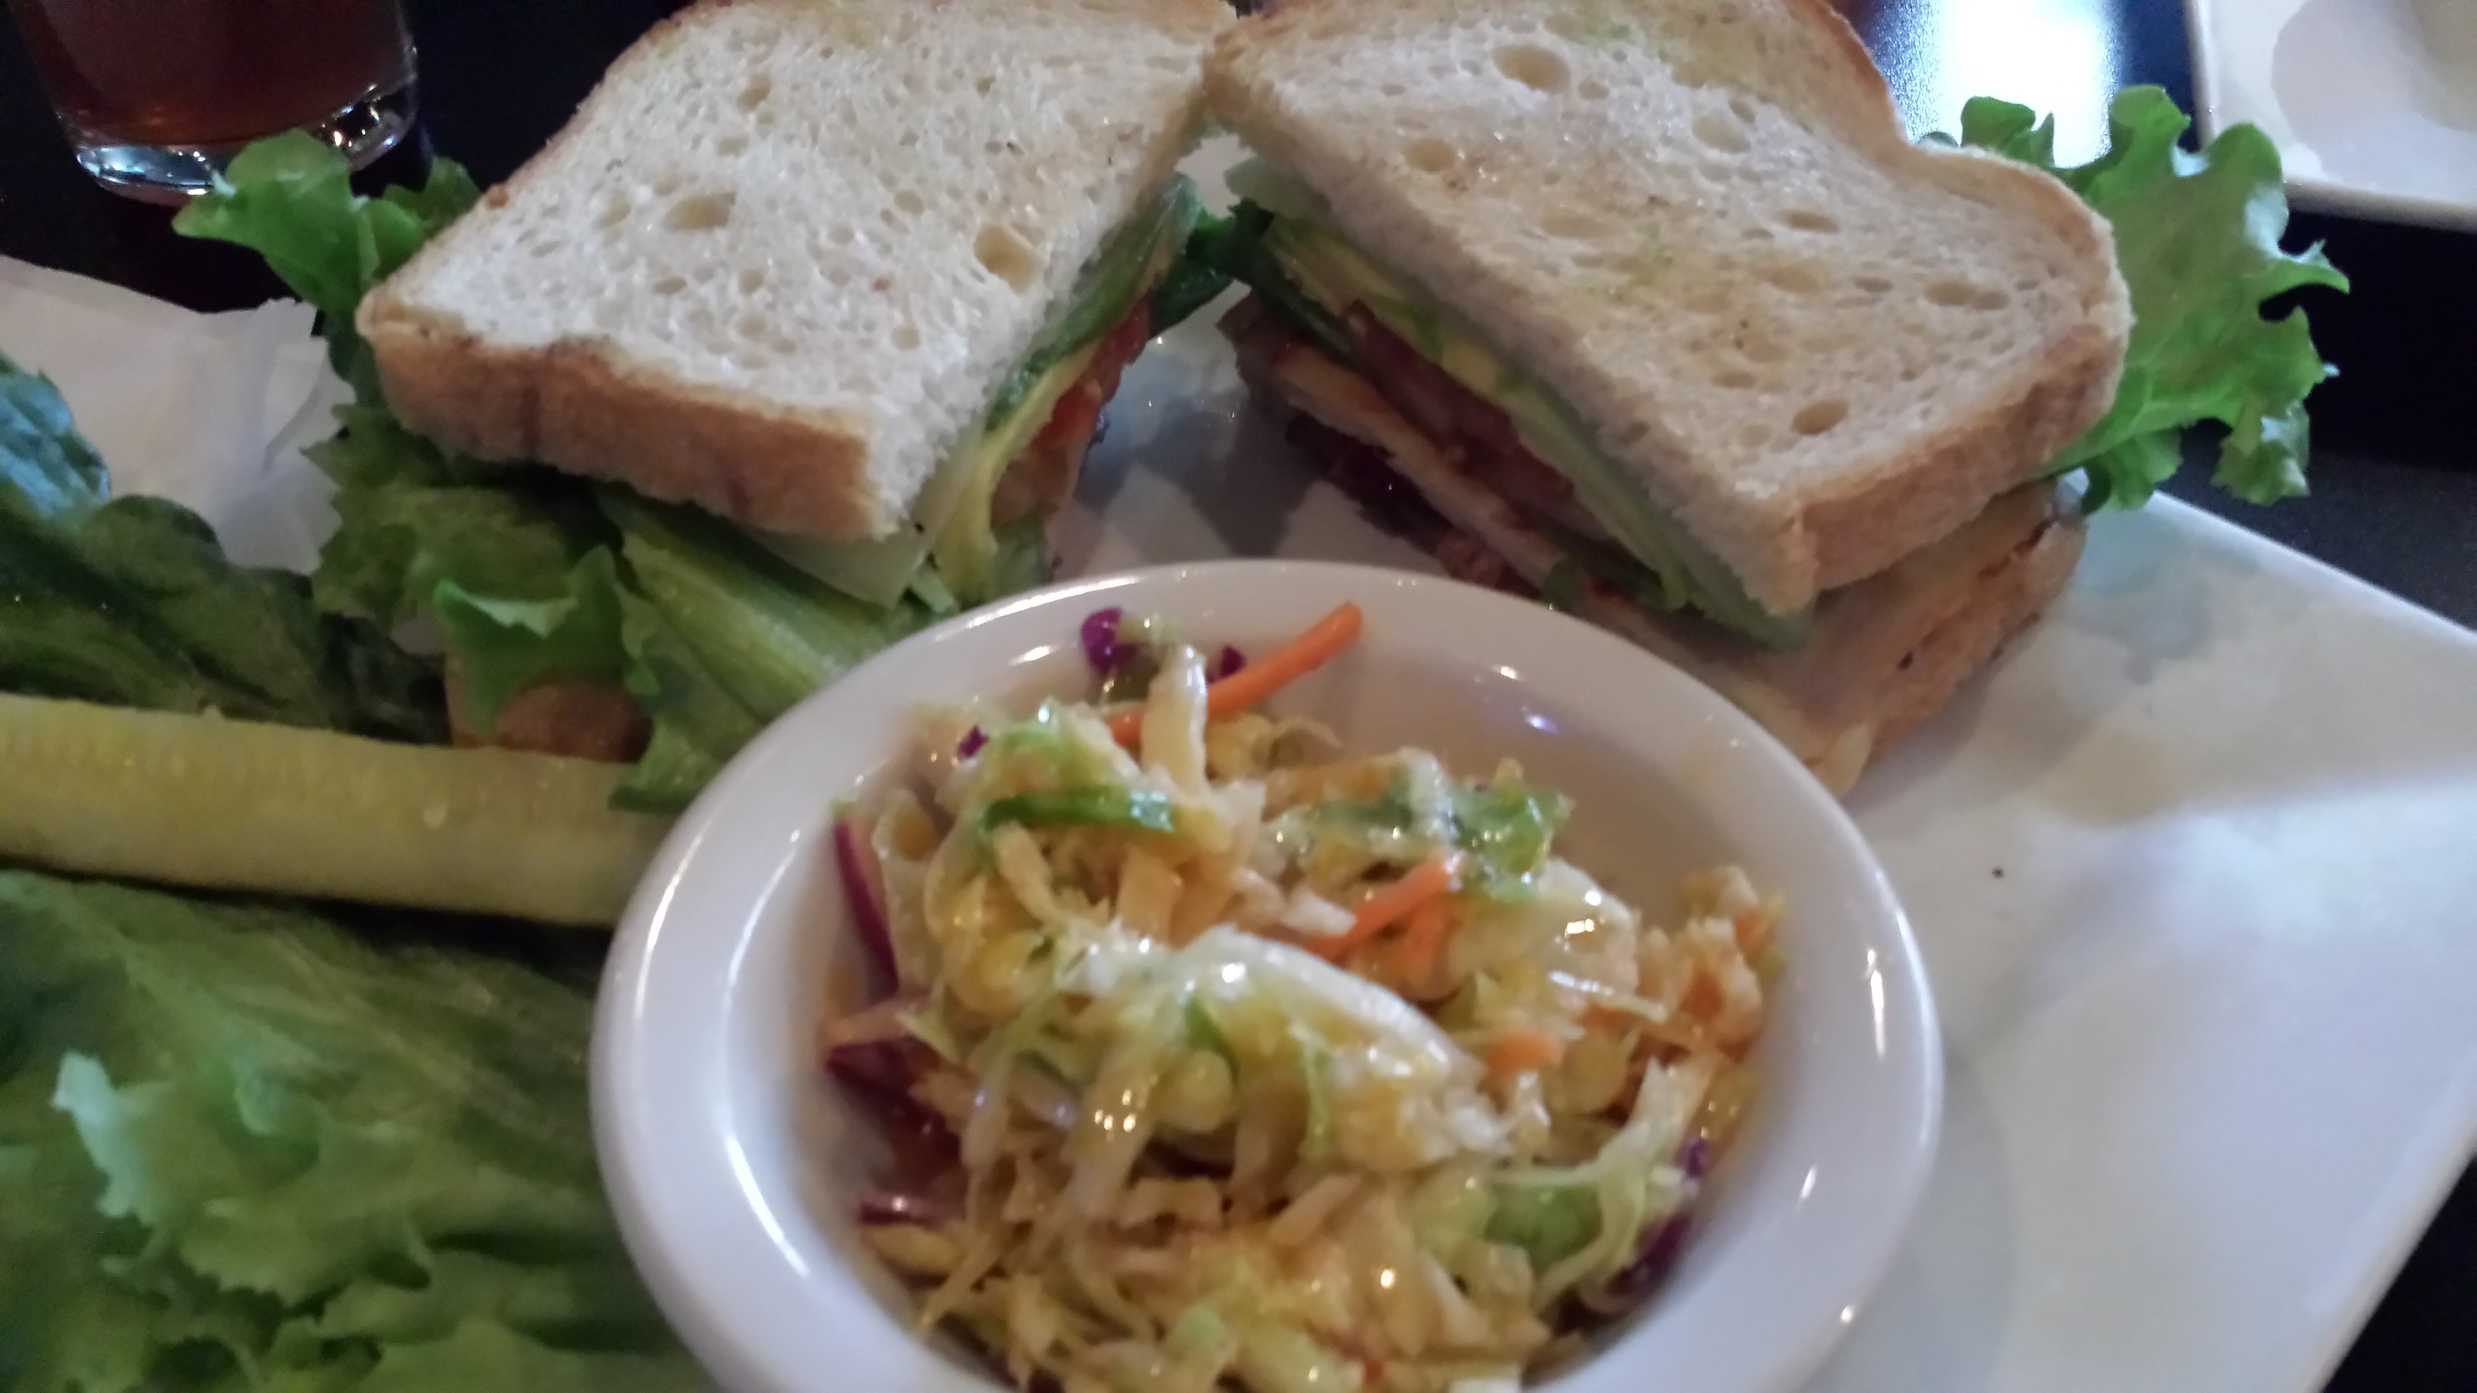 Sandwich at The Dillinger